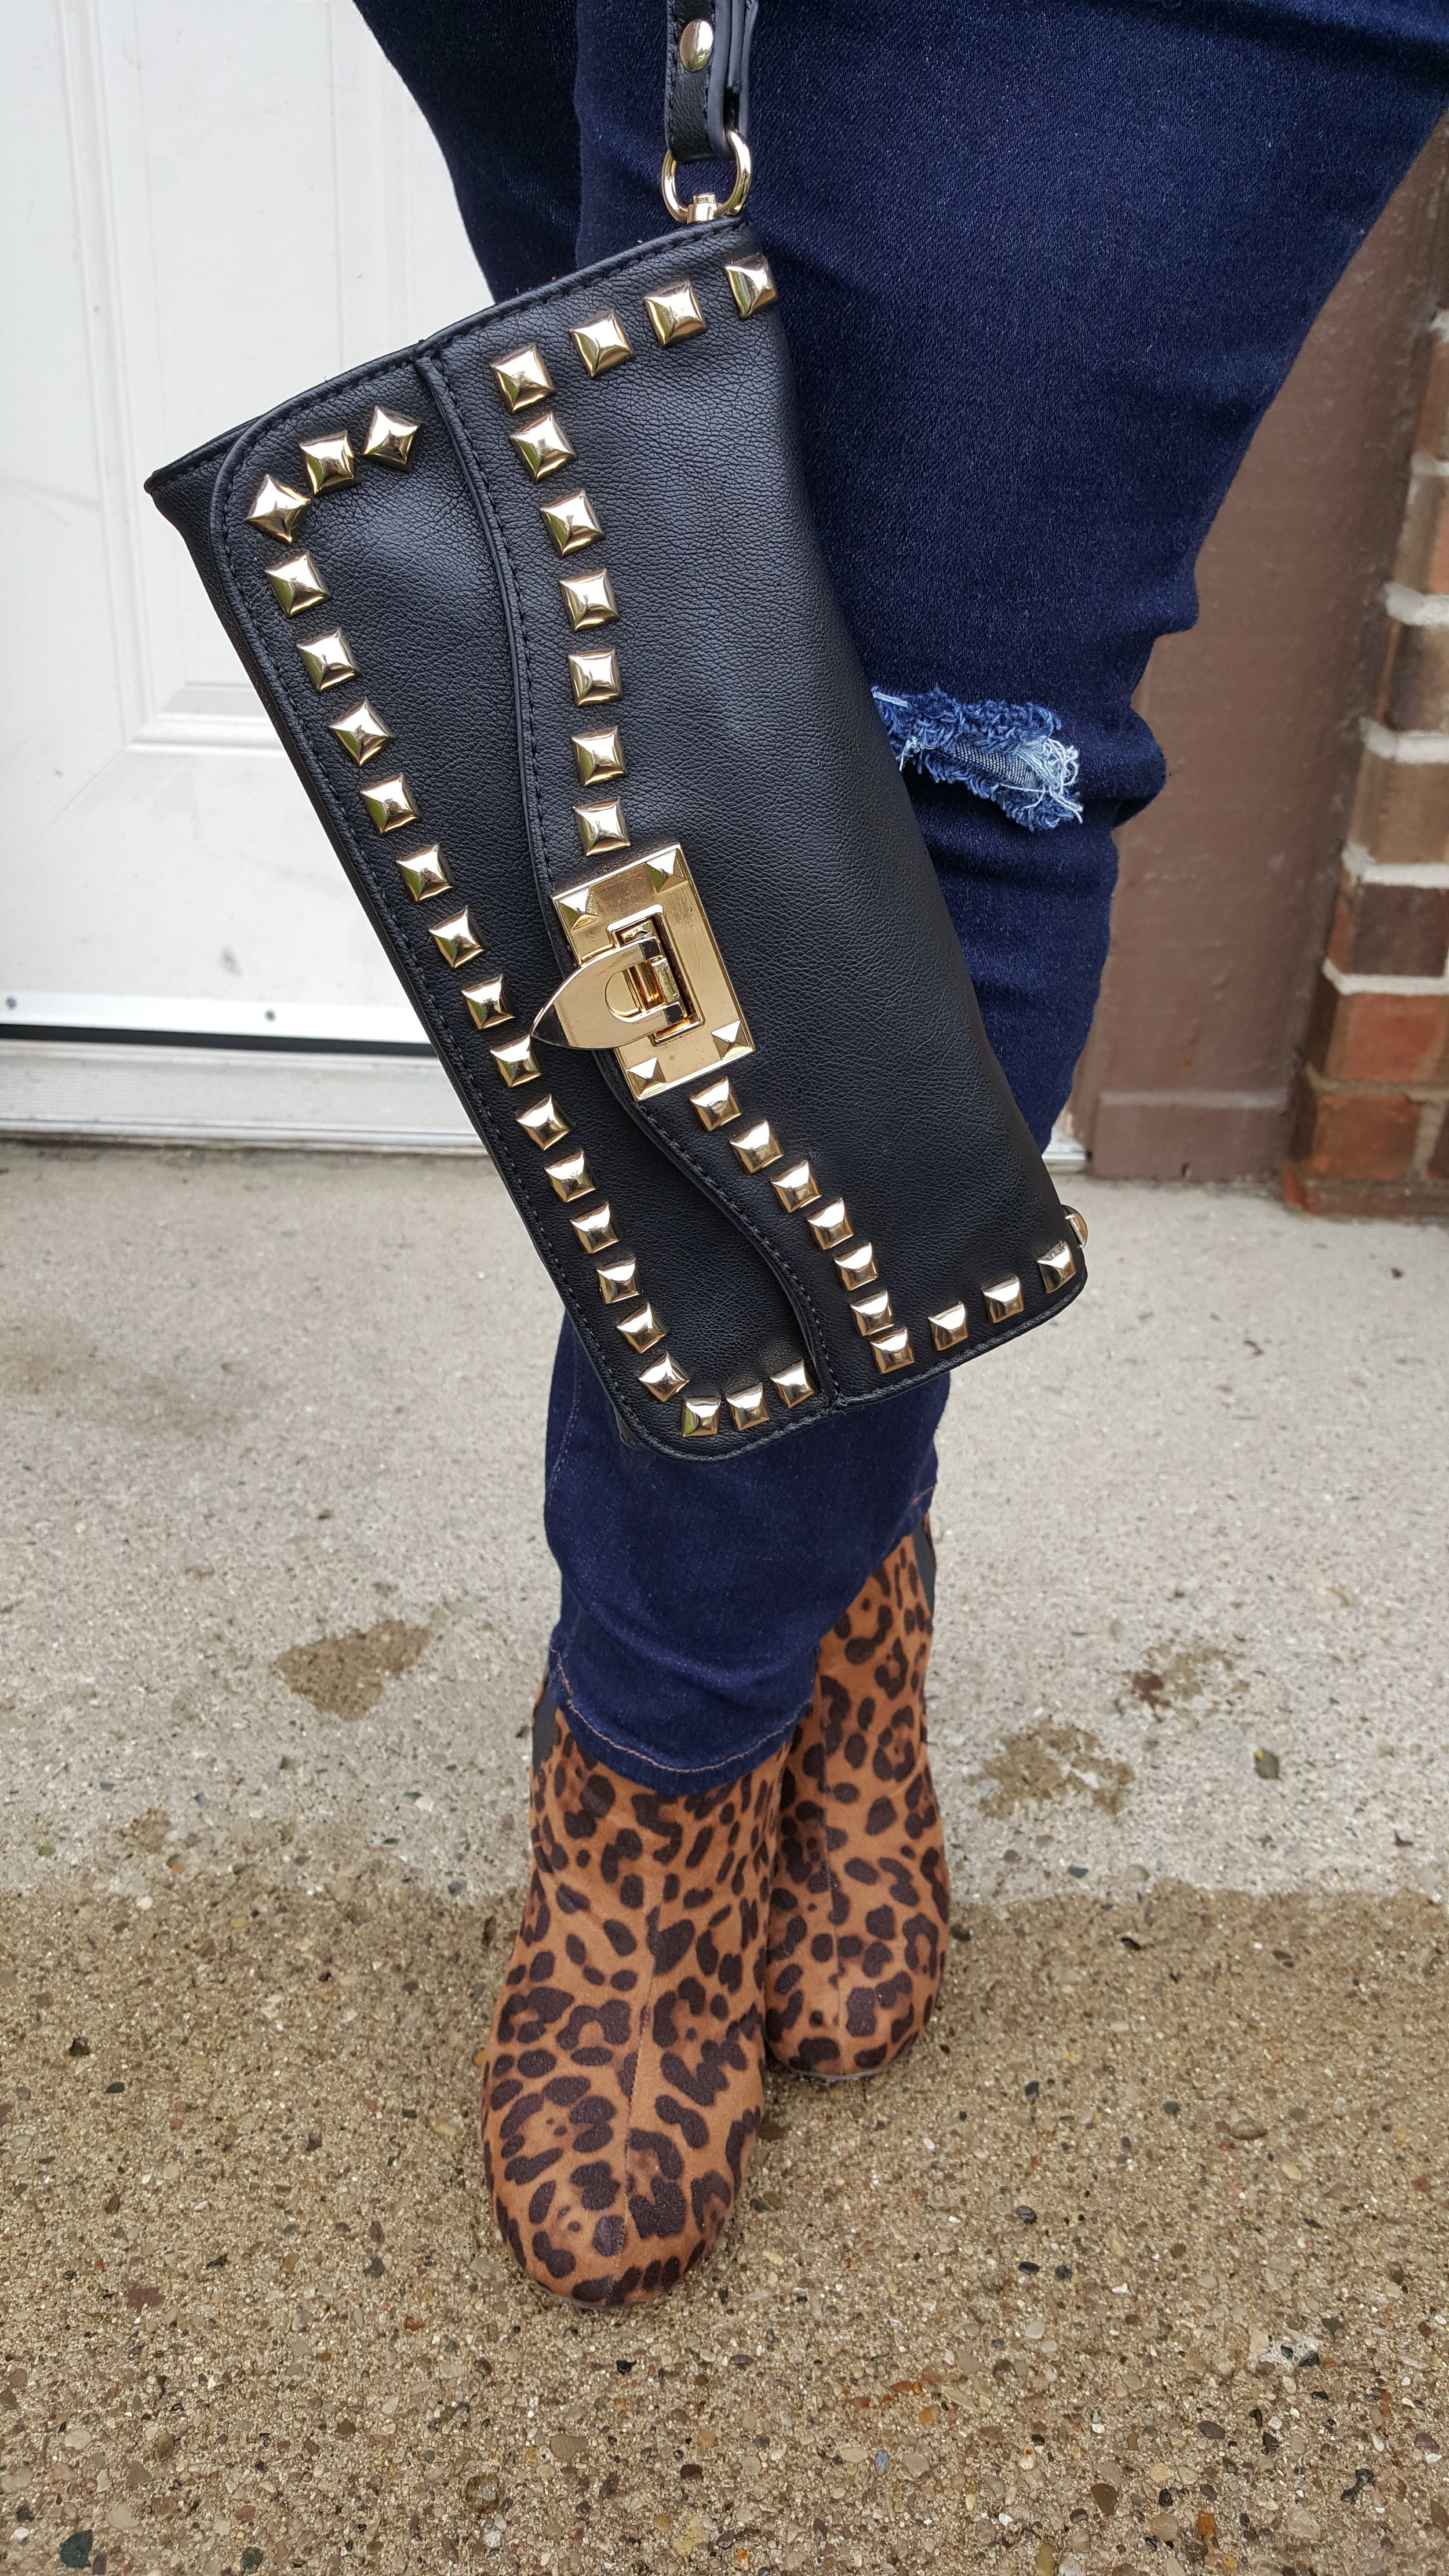 We all have a little Rocker Chic in us...use your accessories to help you bring it out!